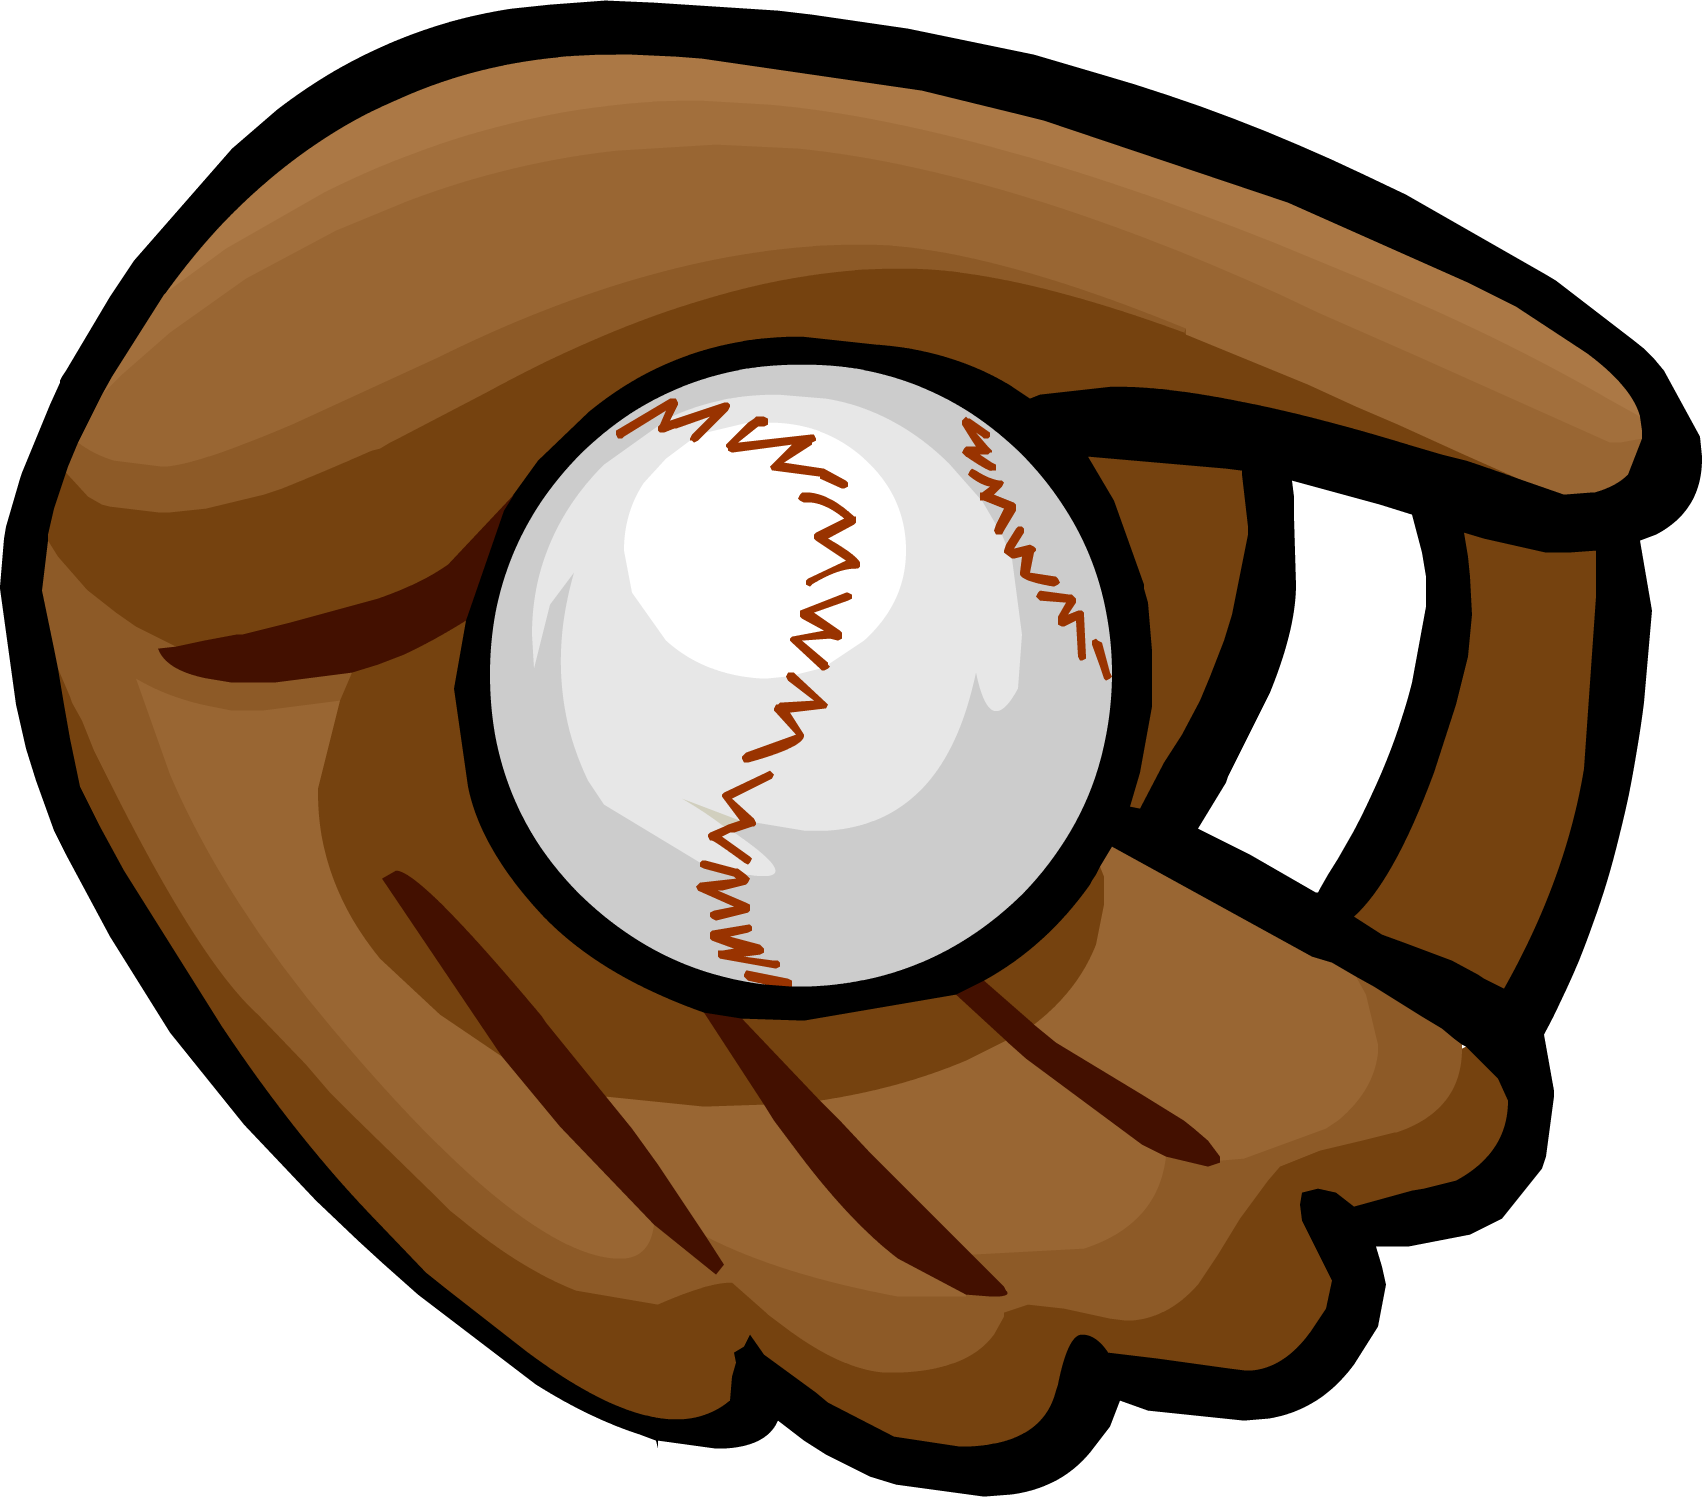 Clipart of baseball gear picture Image - Baseball Glove clothing icon ID 717.png | Club Penguin Wiki ... picture